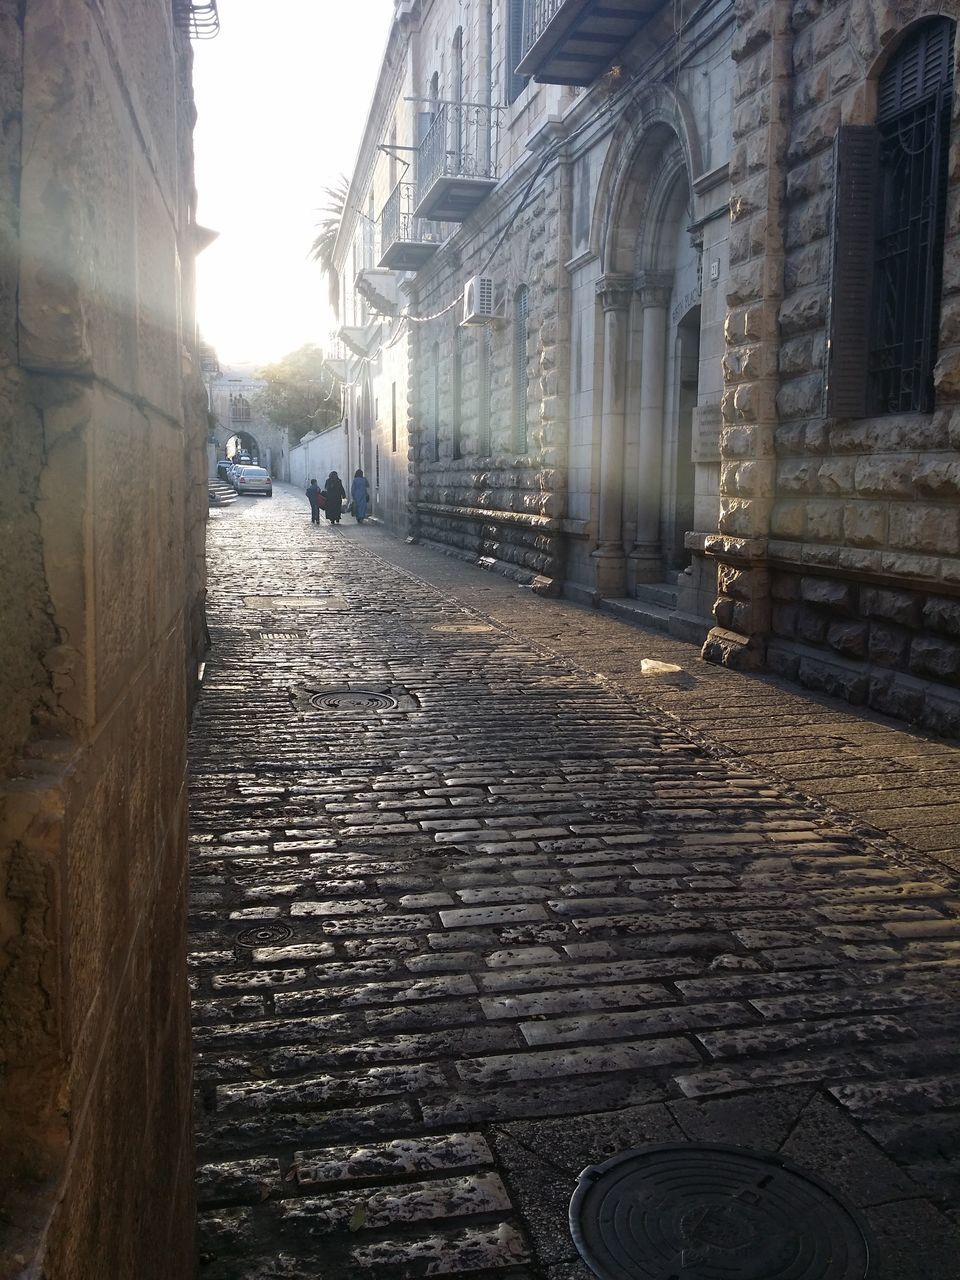 architecture, building exterior, built structure, street, building, city, the way forward, direction, incidental people, cobblestone, day, footpath, residential district, nature, outdoors, history, real people, old, the past, alley, paving stone